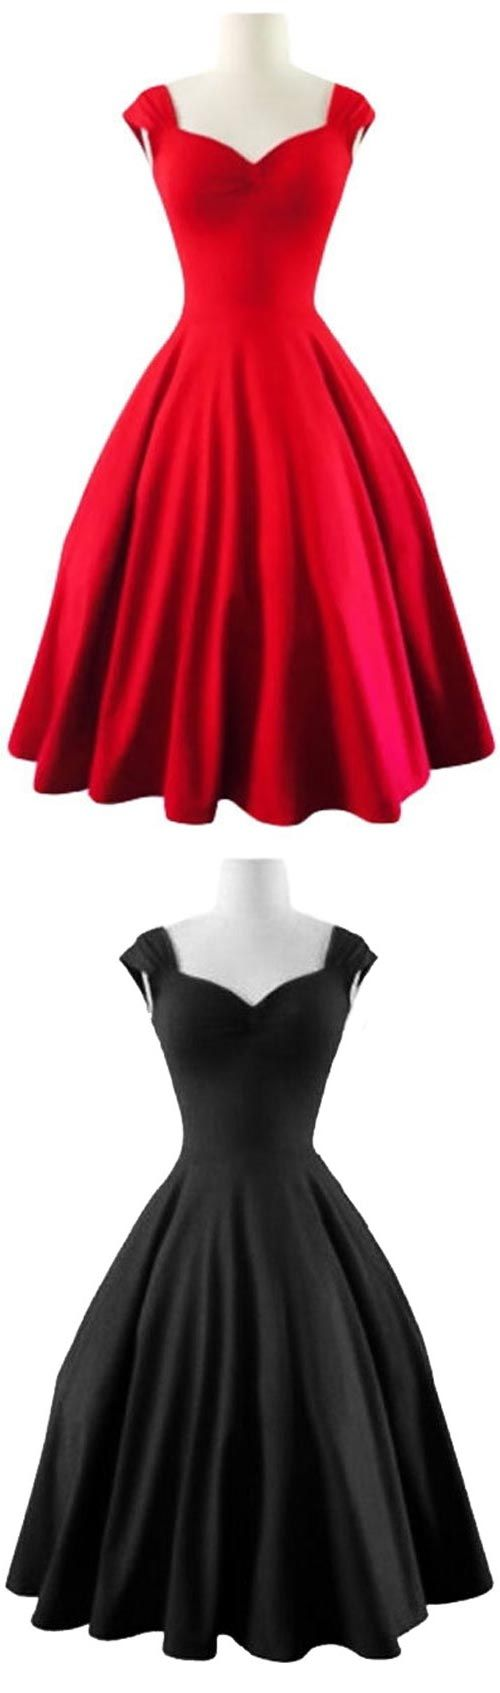 Gotta a invite to a wedding party? Here comes your perfect solution. The dress,ONLY $25.99,featuring front sweetheart neckline and slim waist. Get it now at CUPSHE.COM